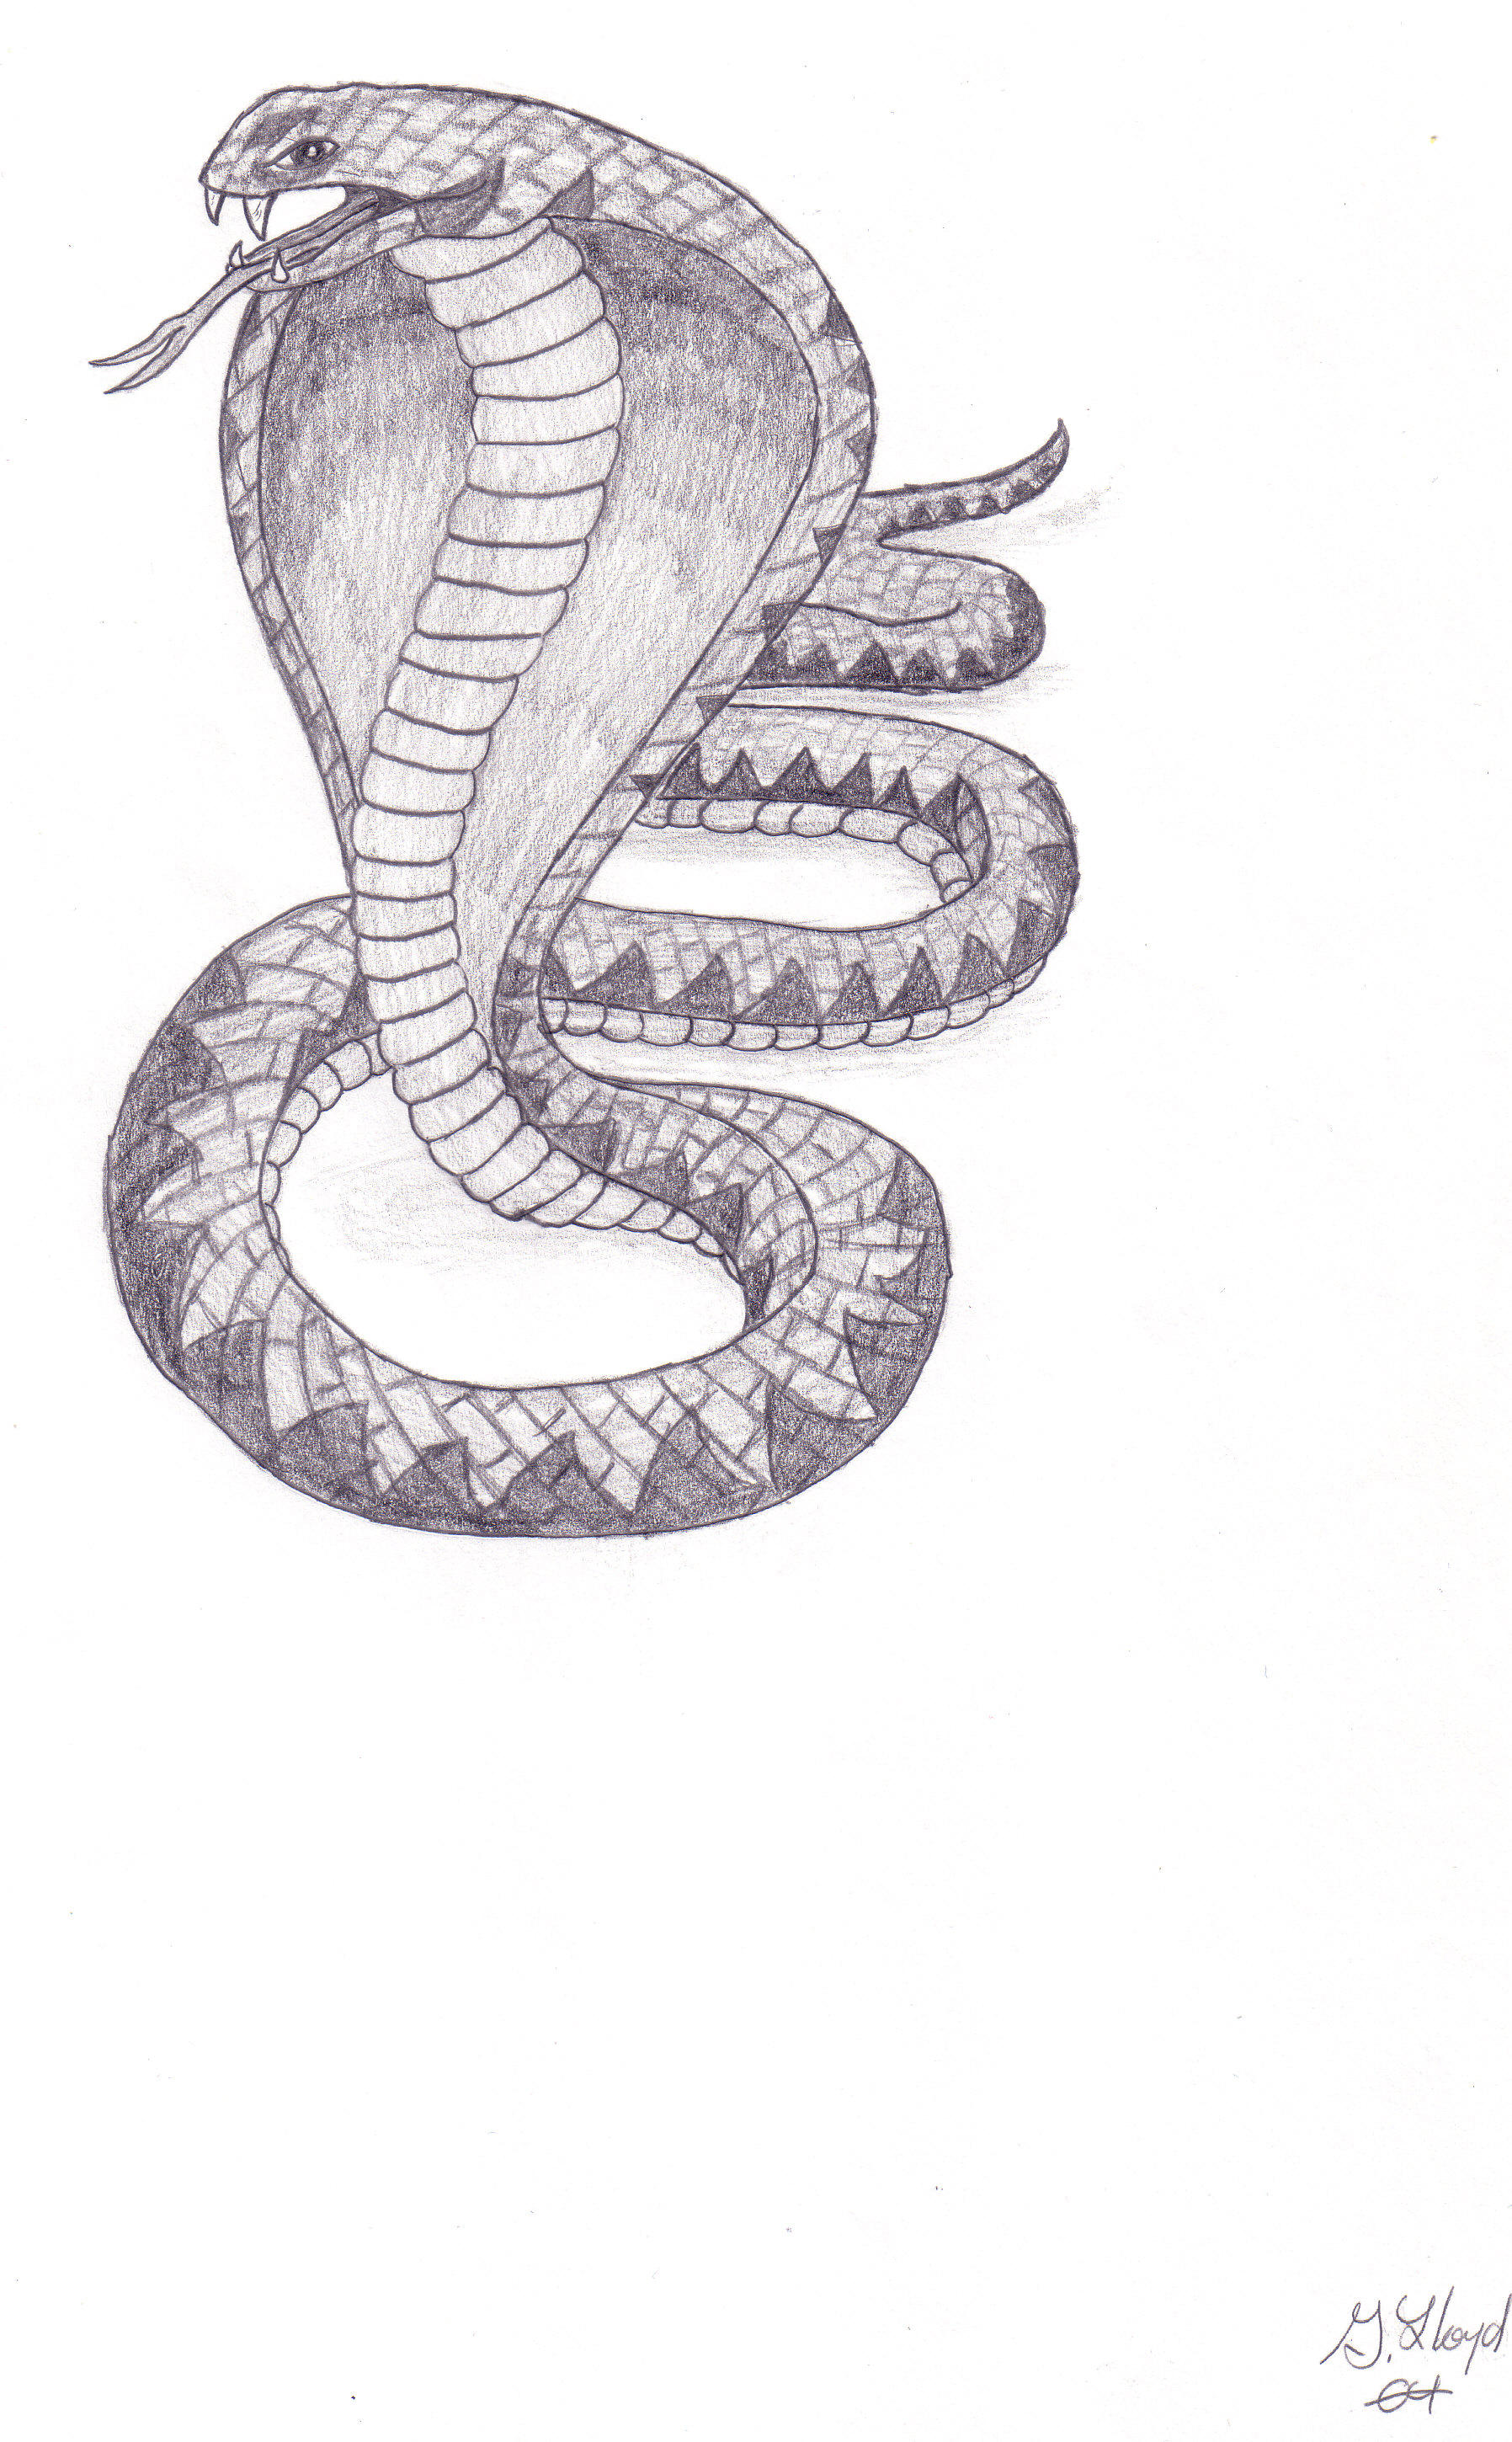 Cobra by CplLloyd on DeviantArt